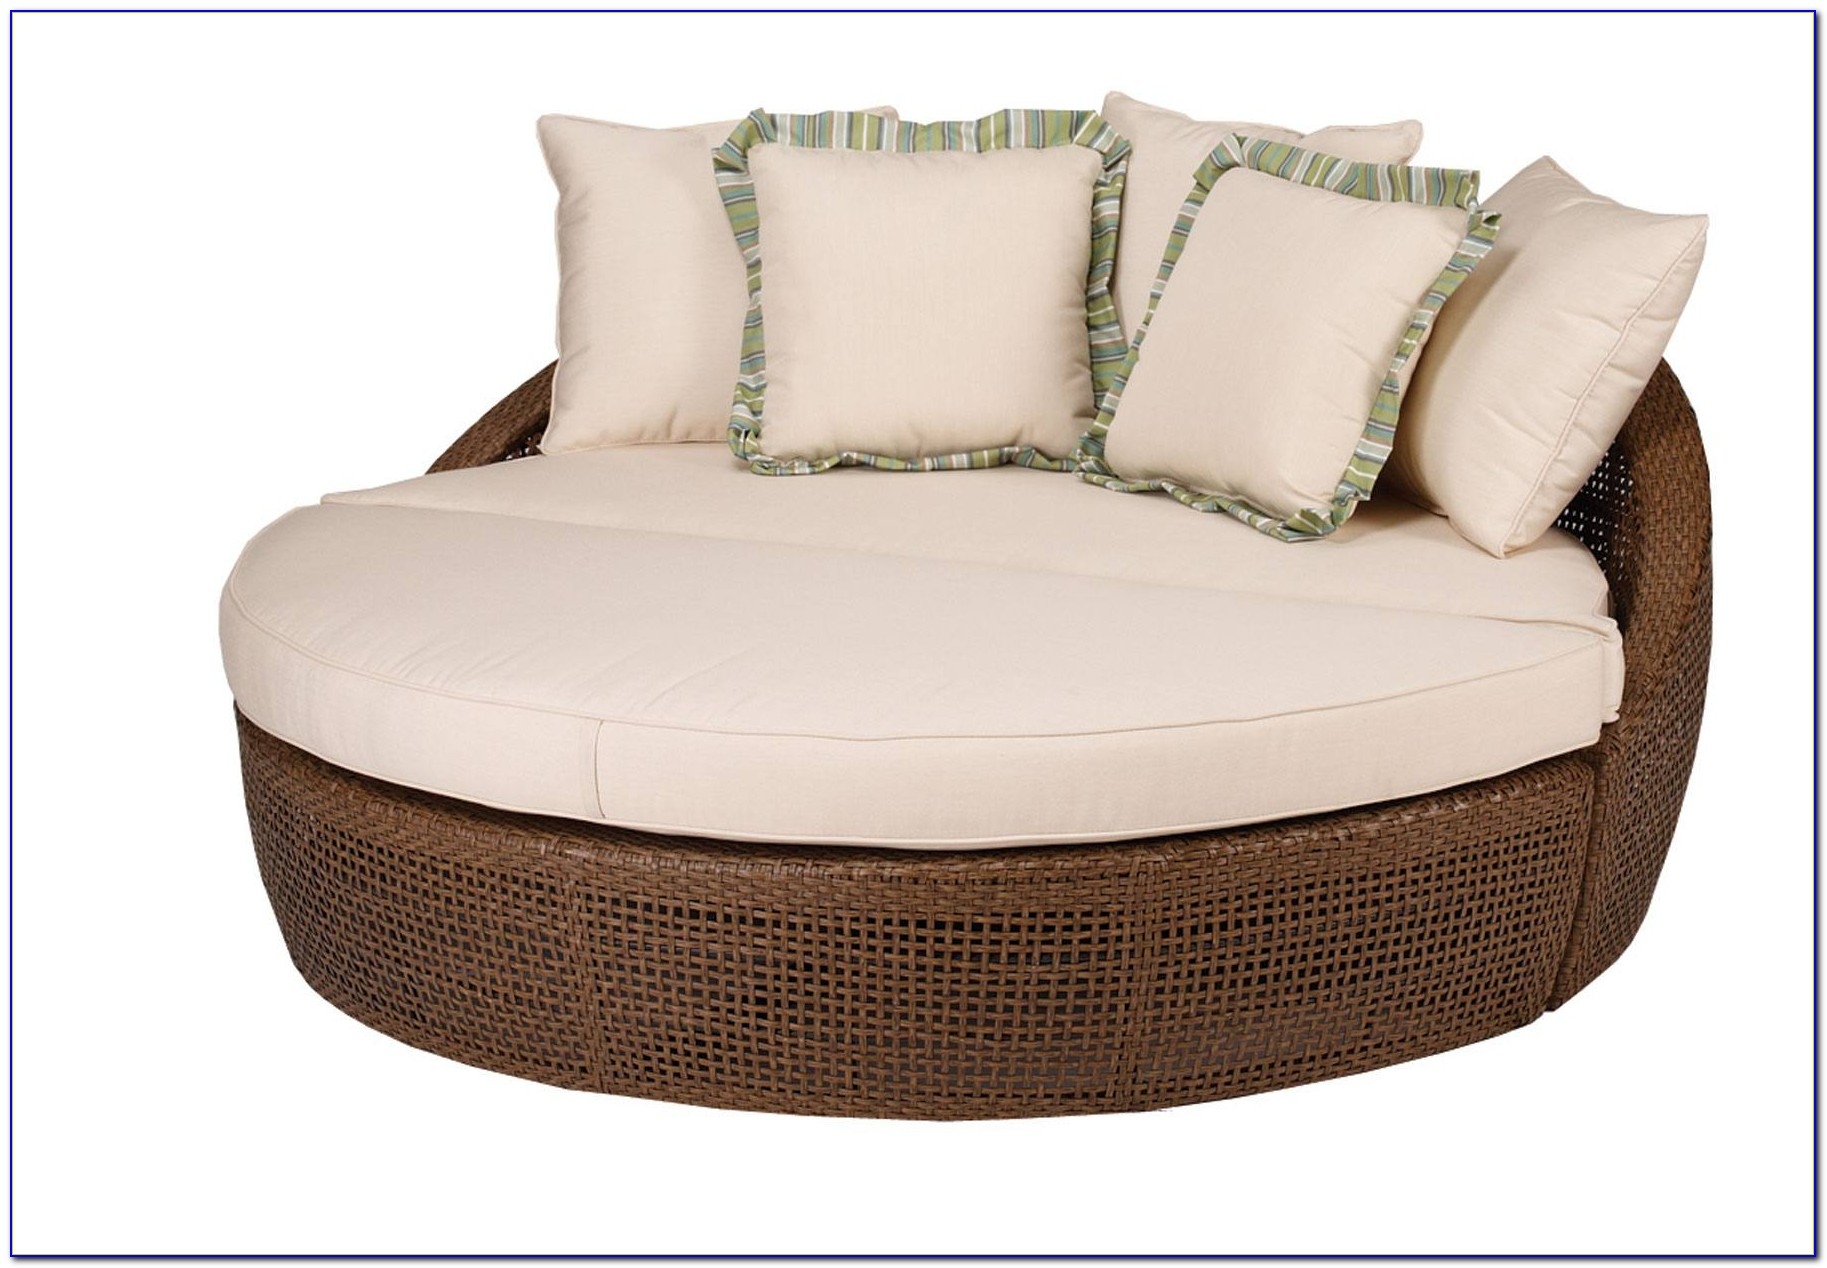 Round Lounge Chair Outdoor Cushions